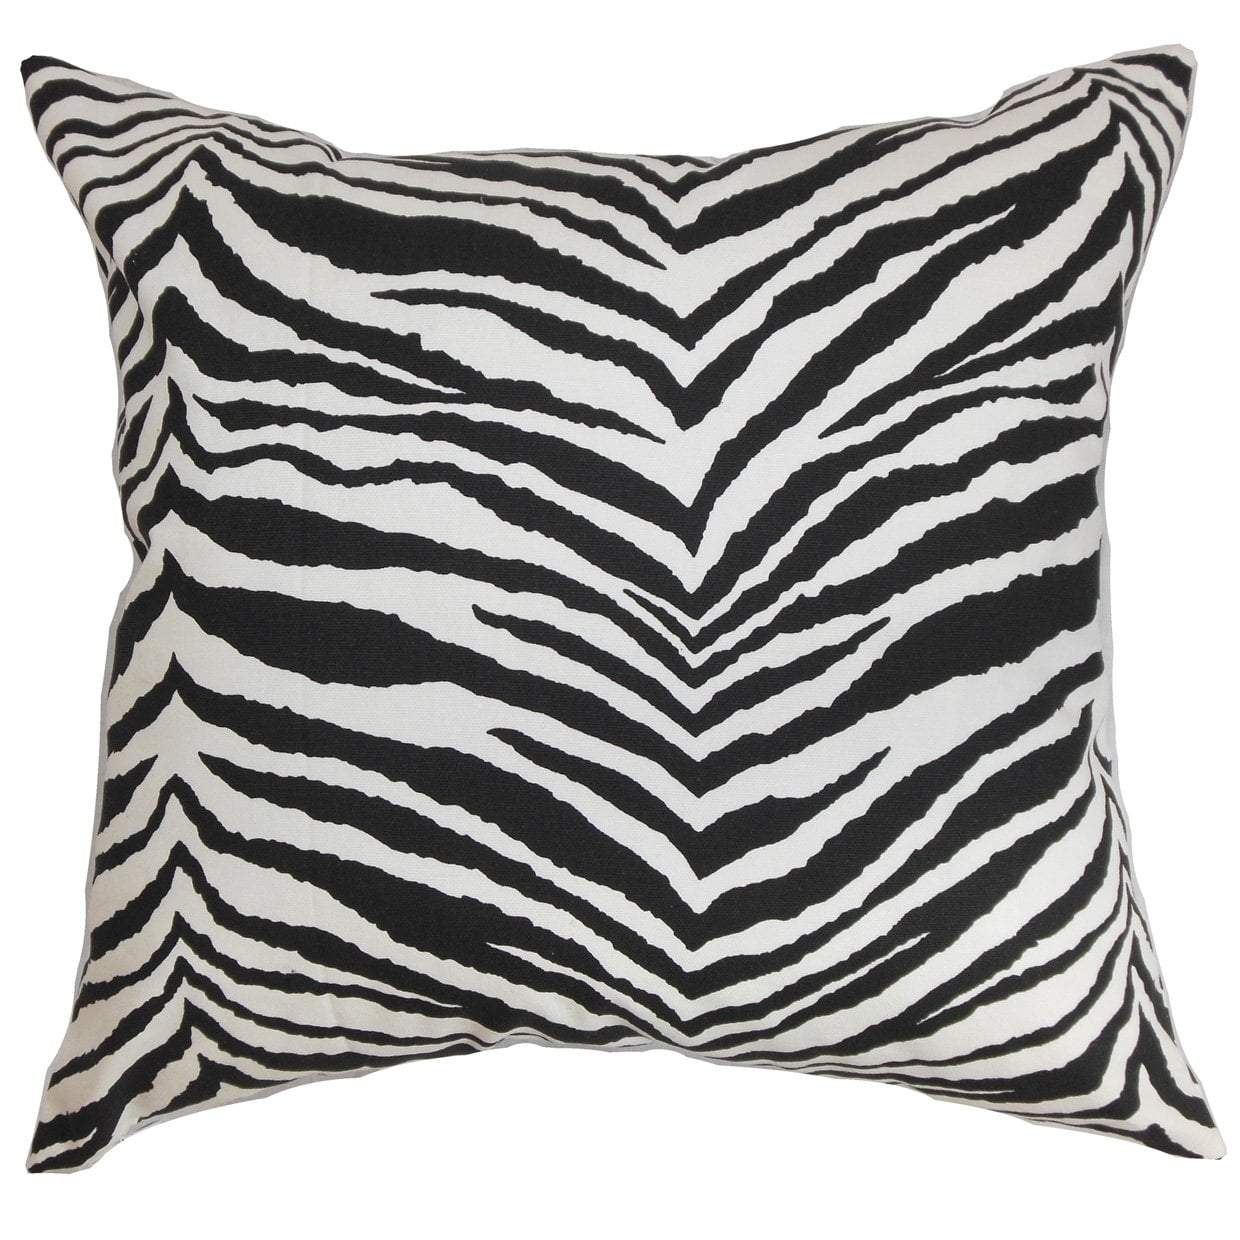 Black Cotton Striped Contemporary Throw Pillow Cover